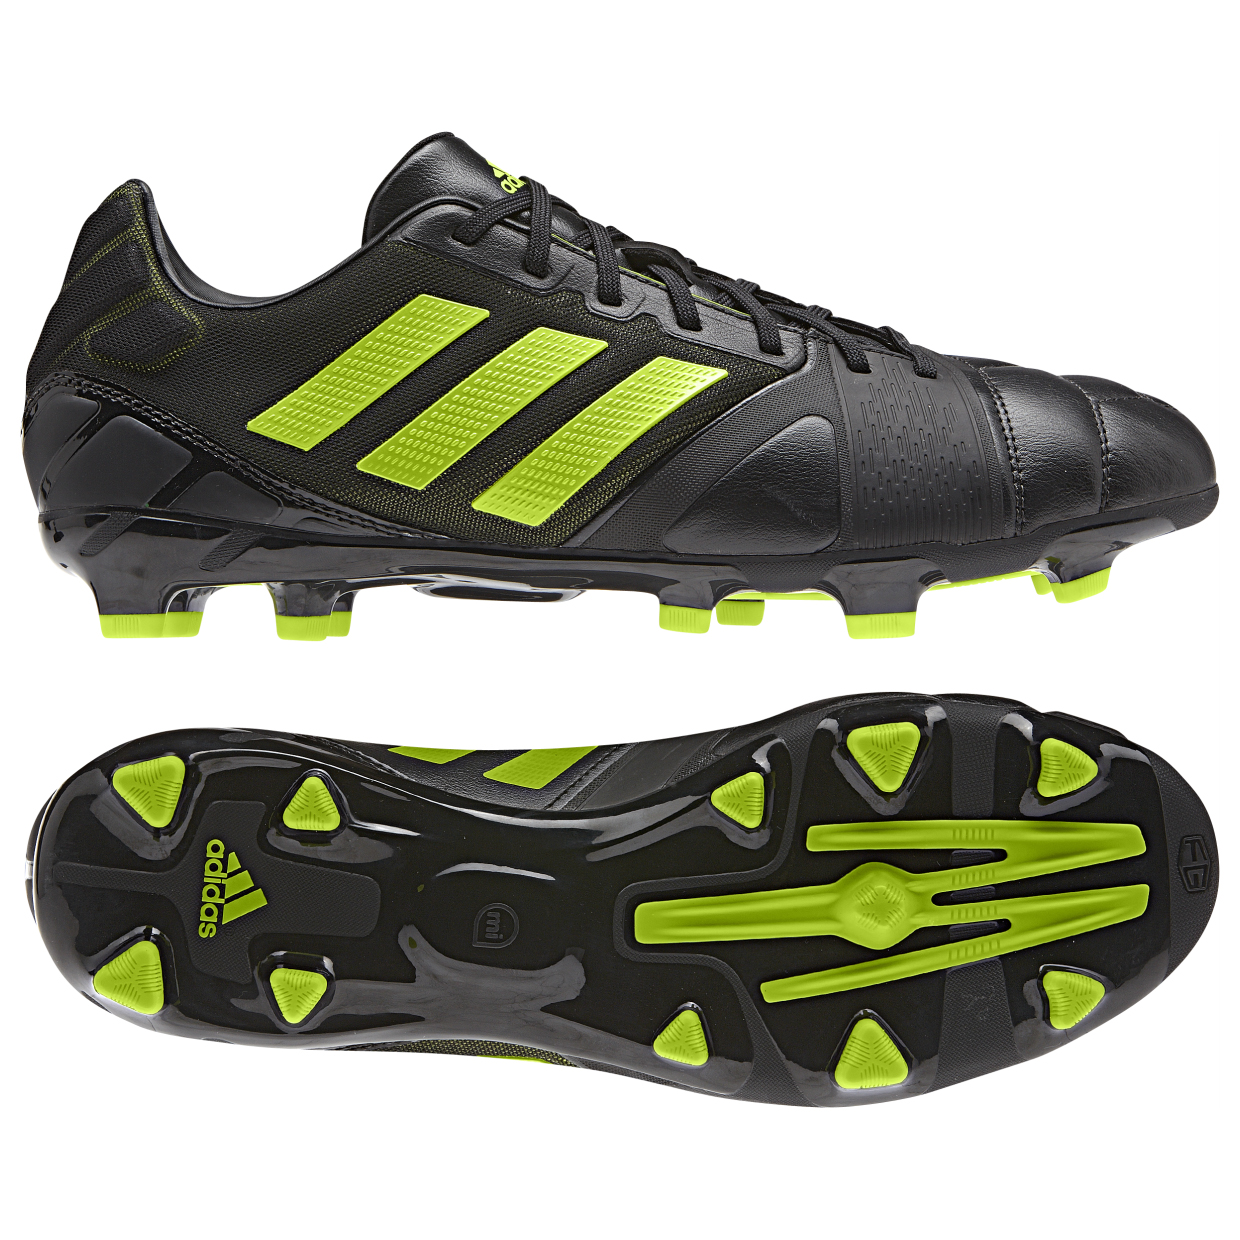 Nitrocharge 2.0 TRX FG Black